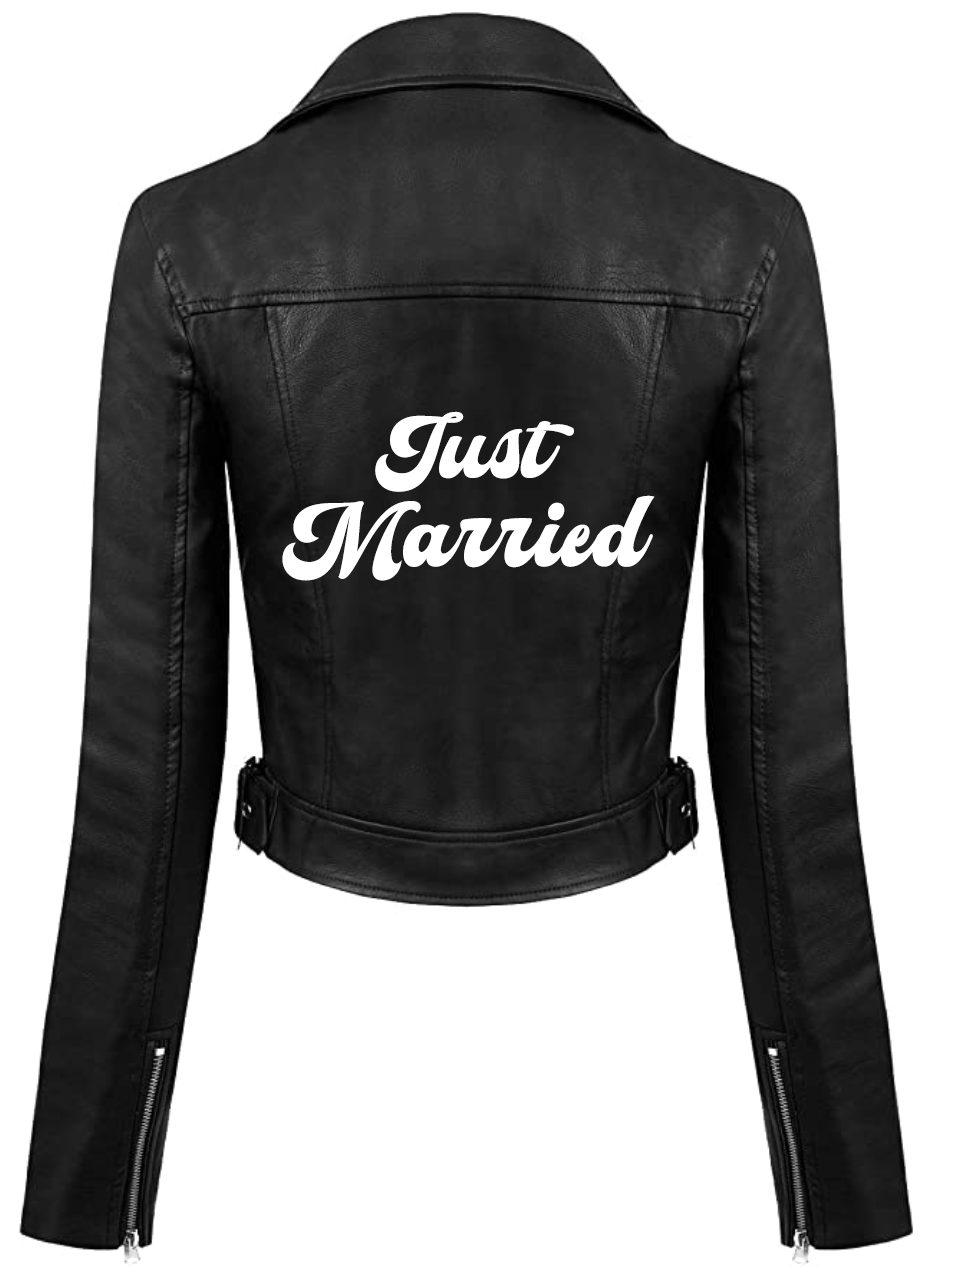 Just Married Faux Black Leather Jacket